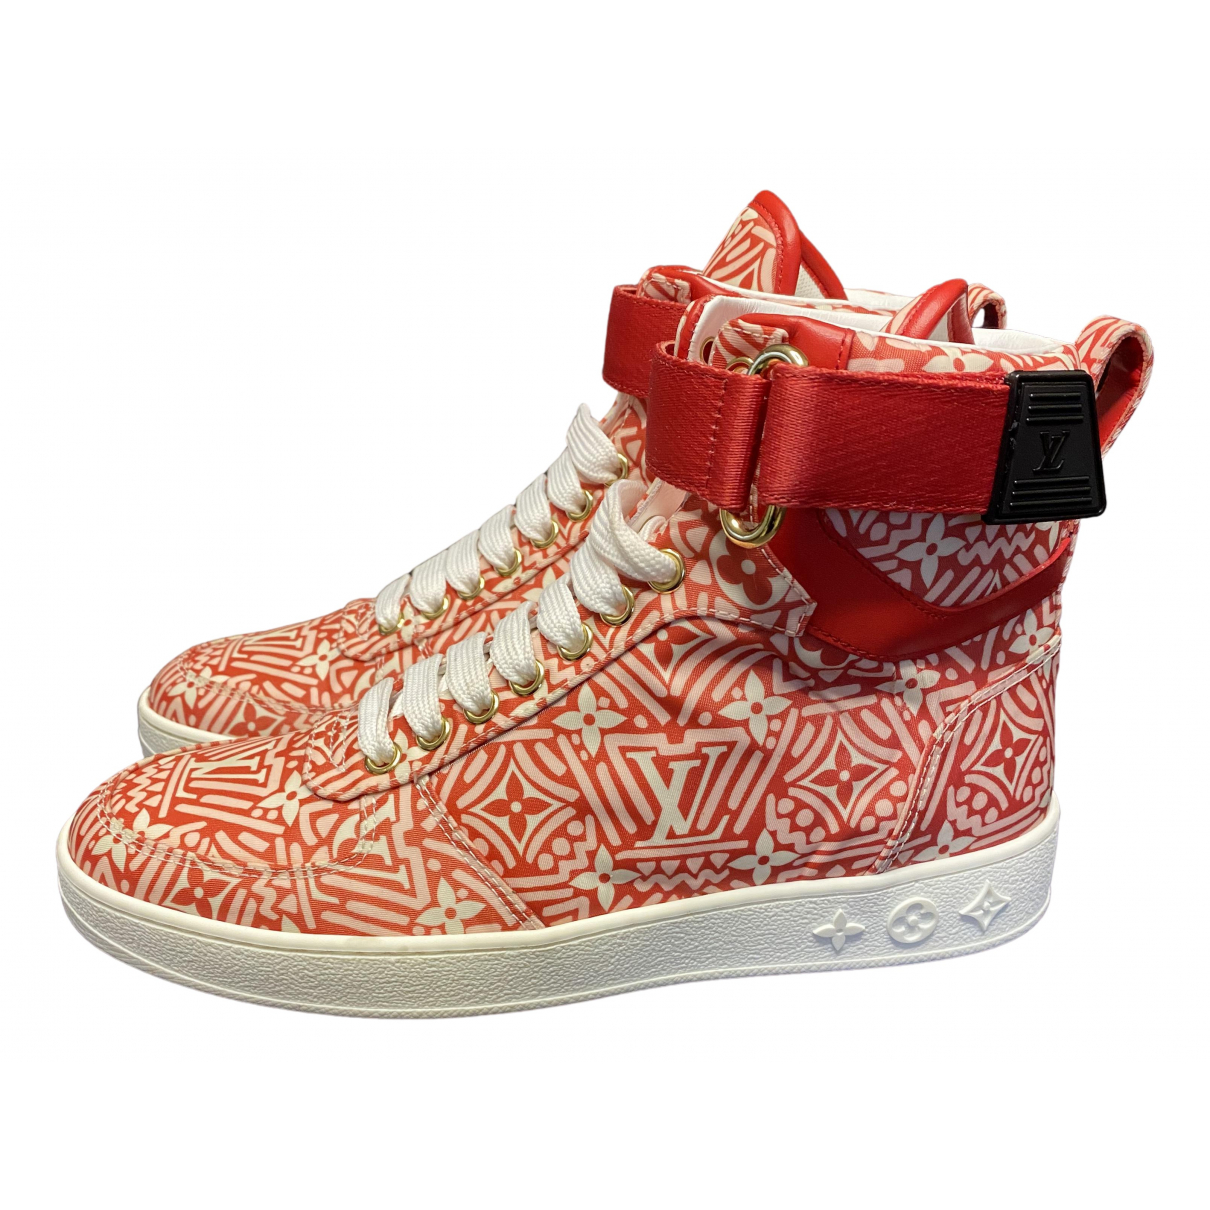 Louis Vuitton \N Sneakers in  Rot Polyester